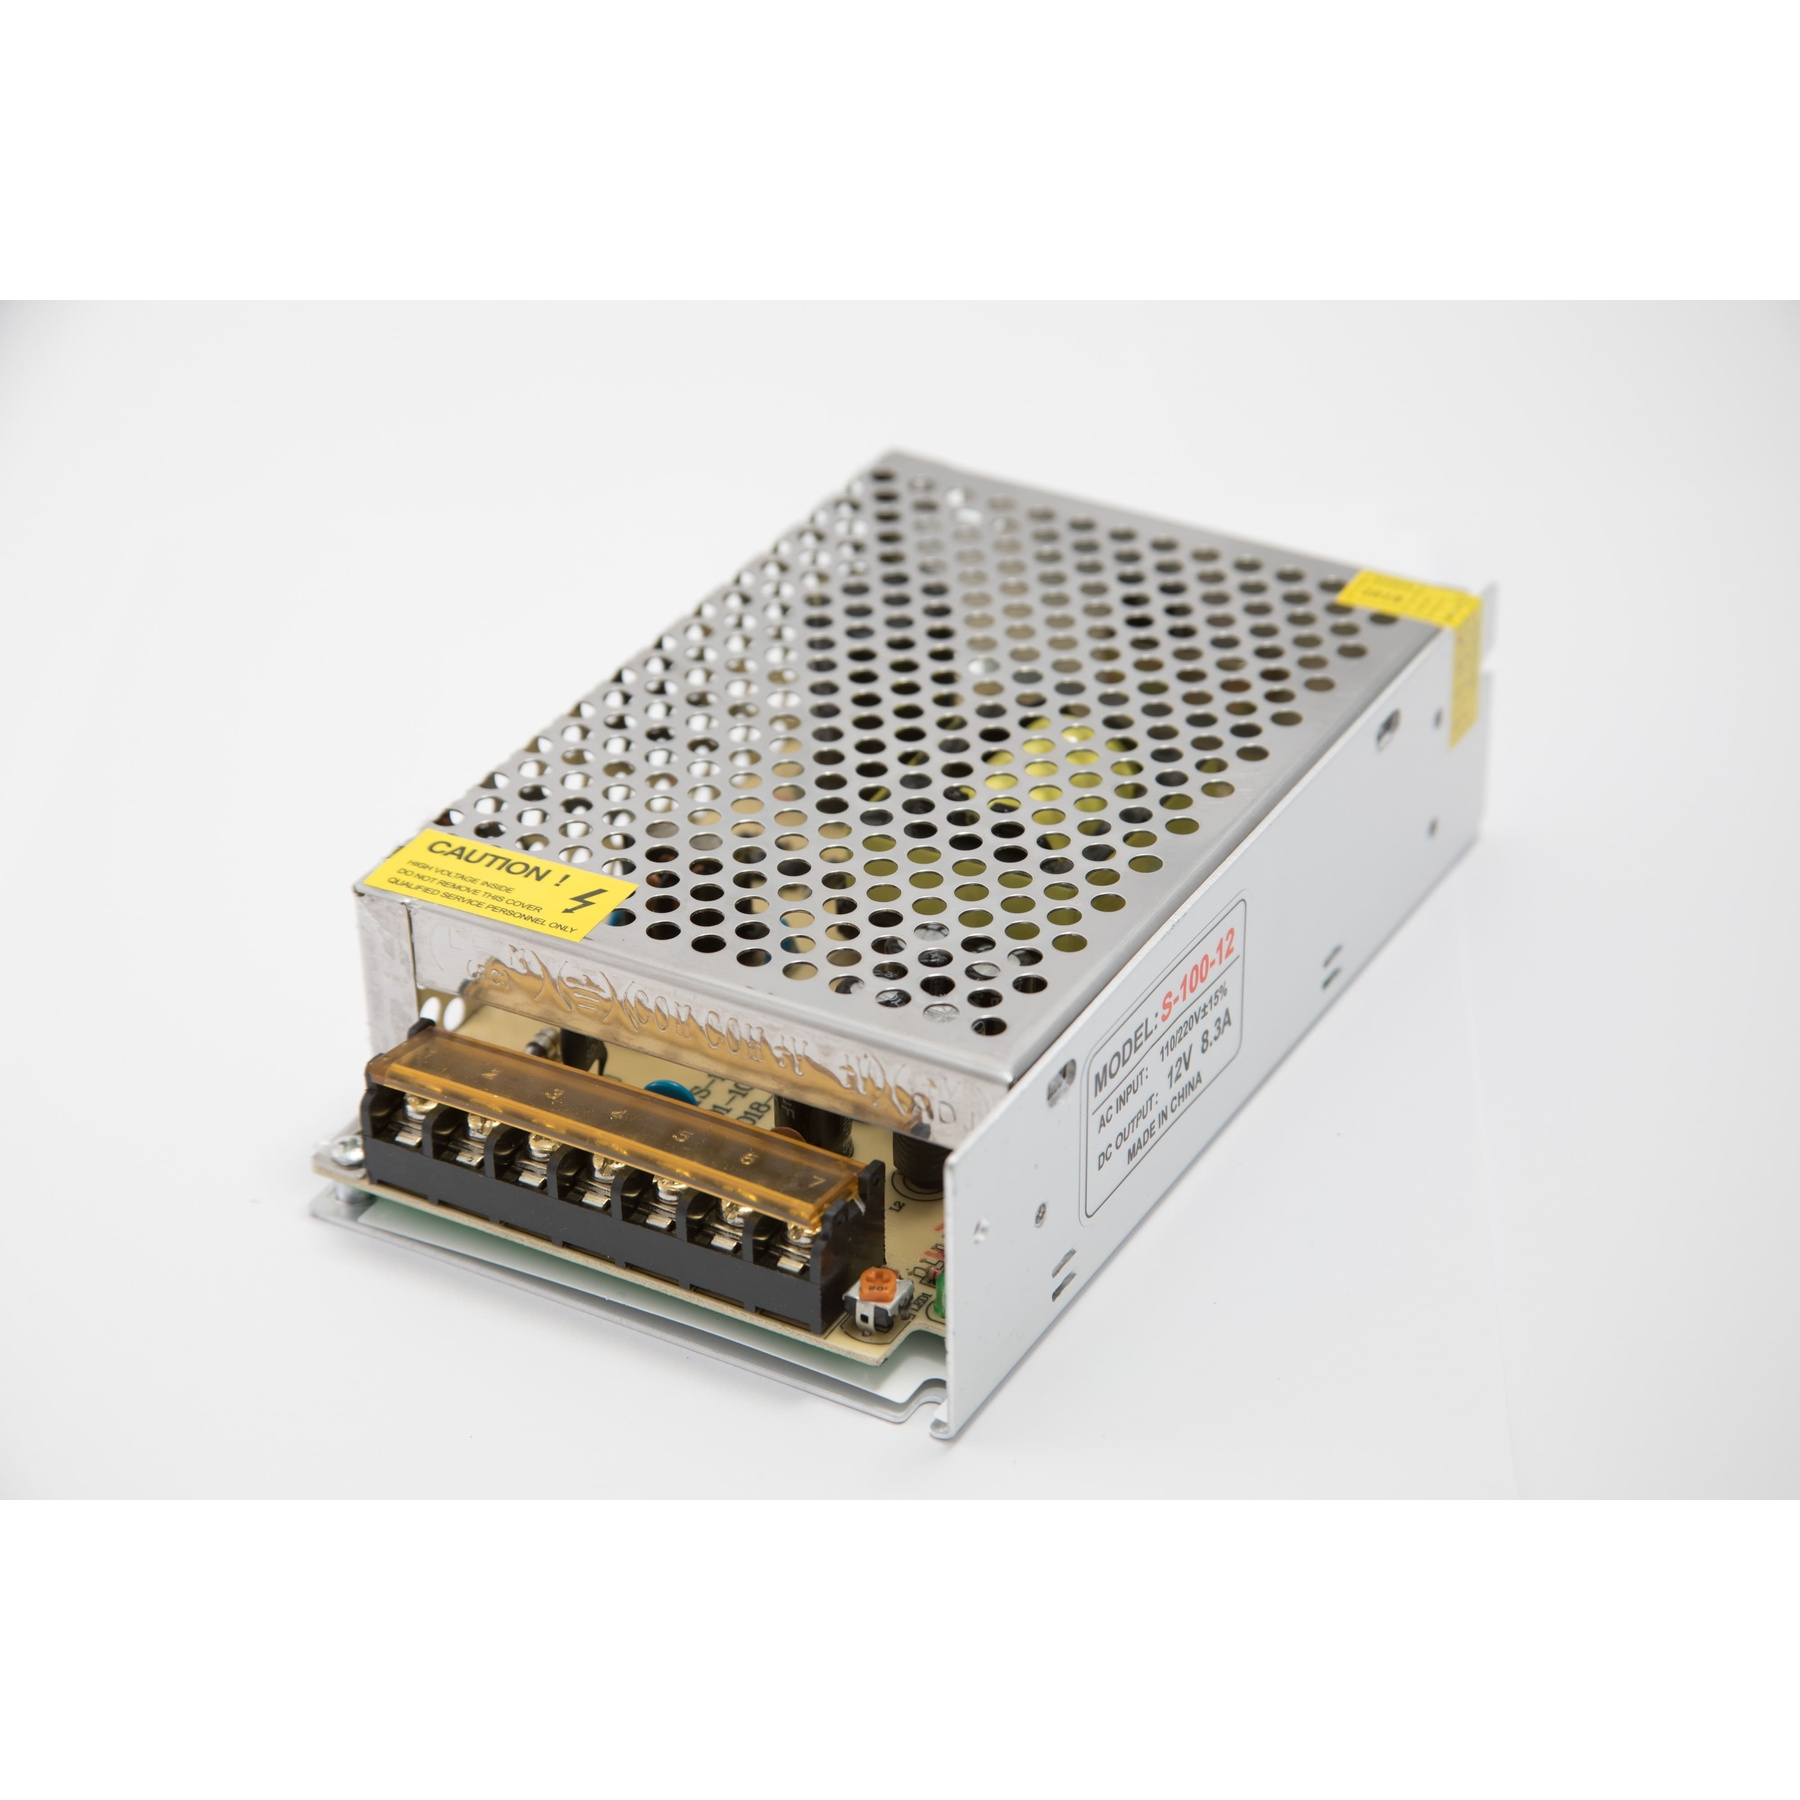 Power supply s-100-12, 100 W, 12 V, 8.3 A, IP22 power supply for led strip, led driver, transformer